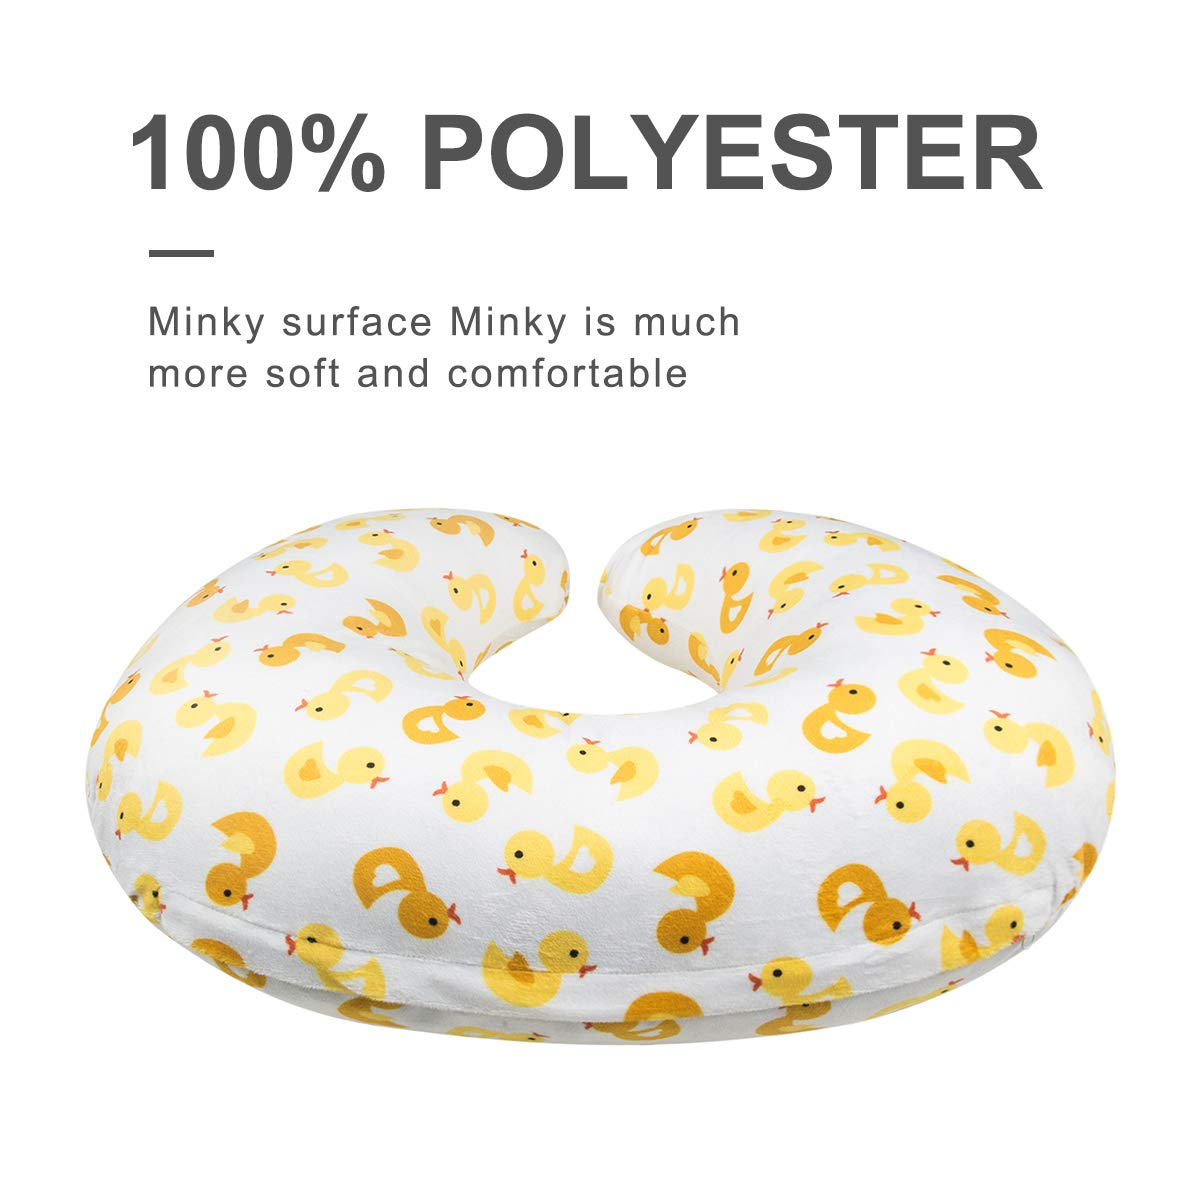 ALVABABY Nursing Pillow Cover Slipcover,100/% Organic Cotton,Soft and Comfortable,Feathers Design,Maternity Breastfeeding Newborn Infant Feeding Cushion Cover,Baby Shower Gift ZT-Z15